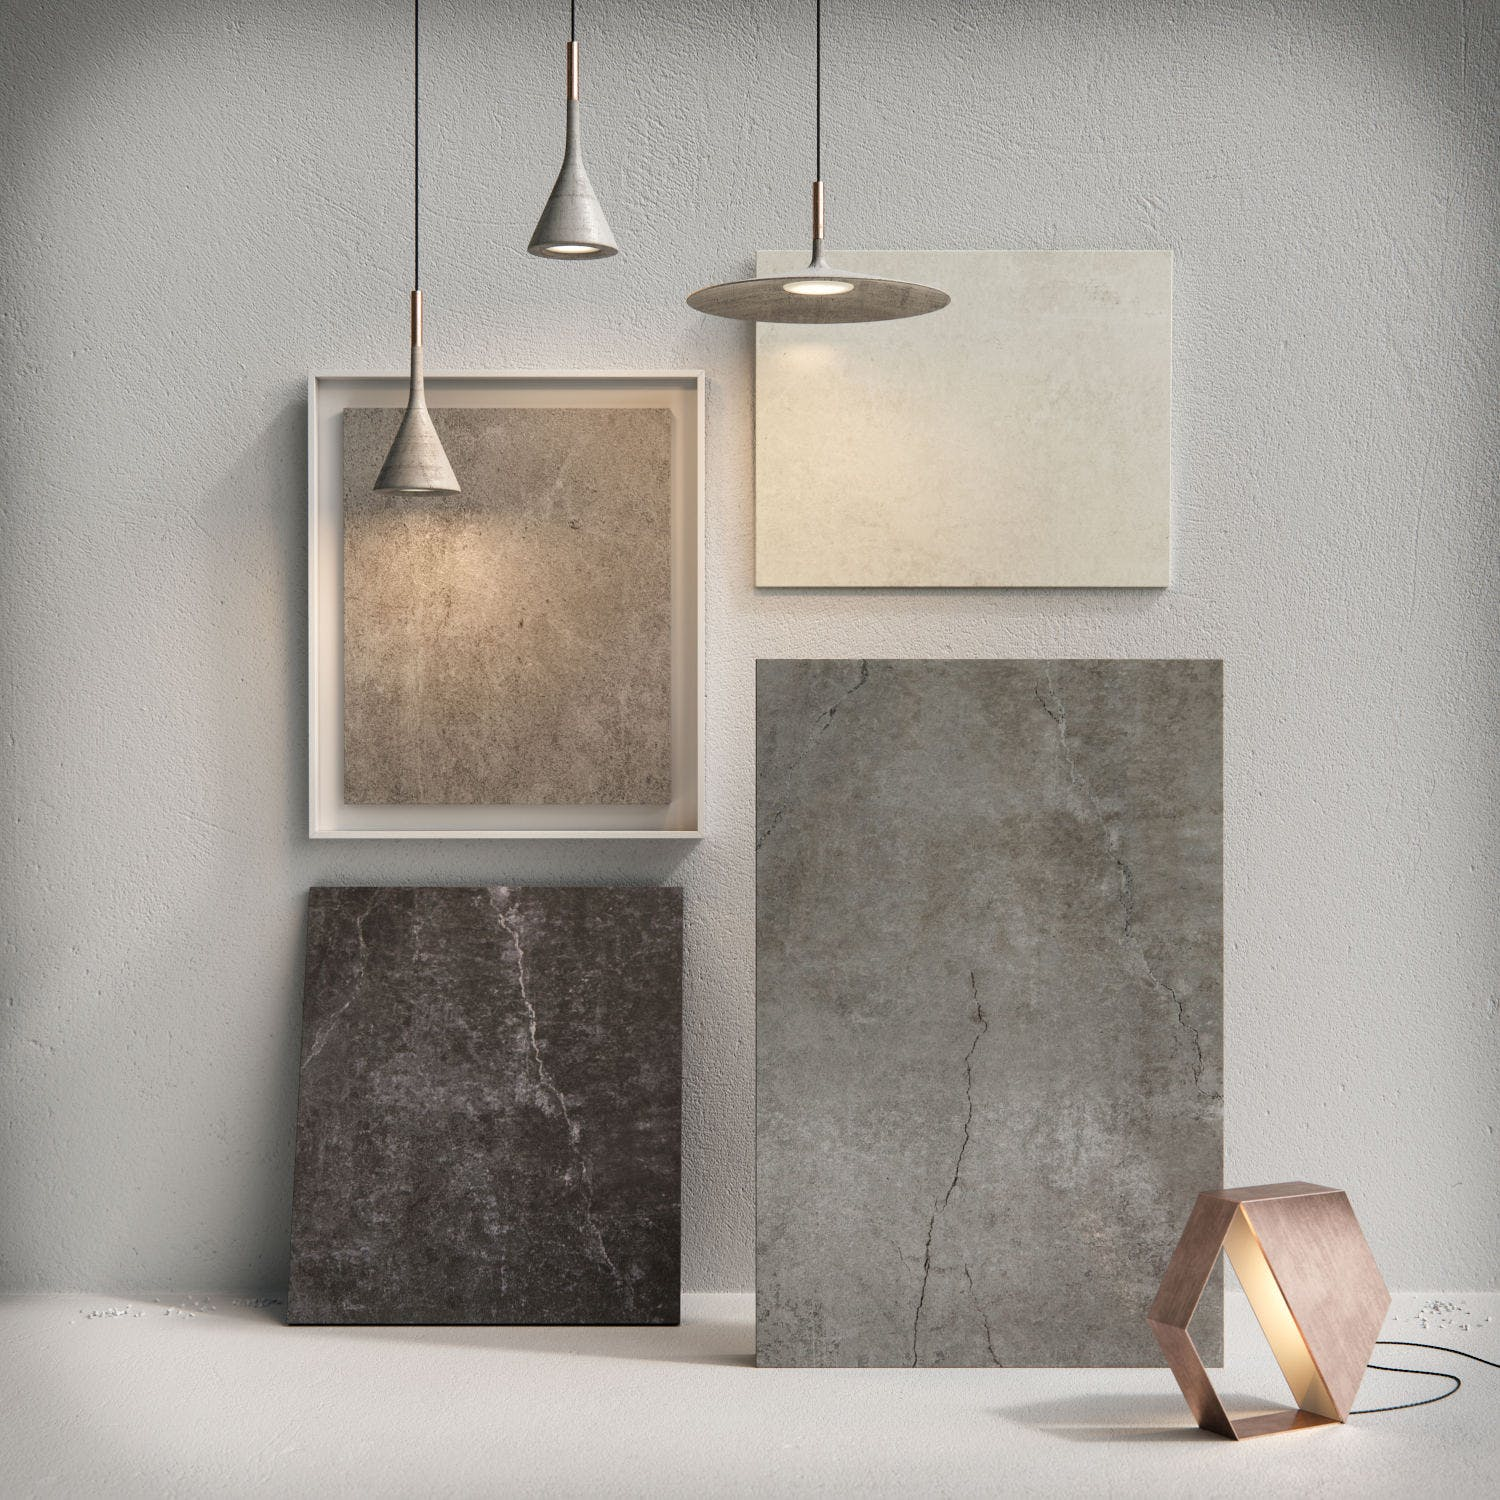 Image of Dekton Industrial Collection 2 in Discover the trendiest ideas to decorate your home - Cosentino